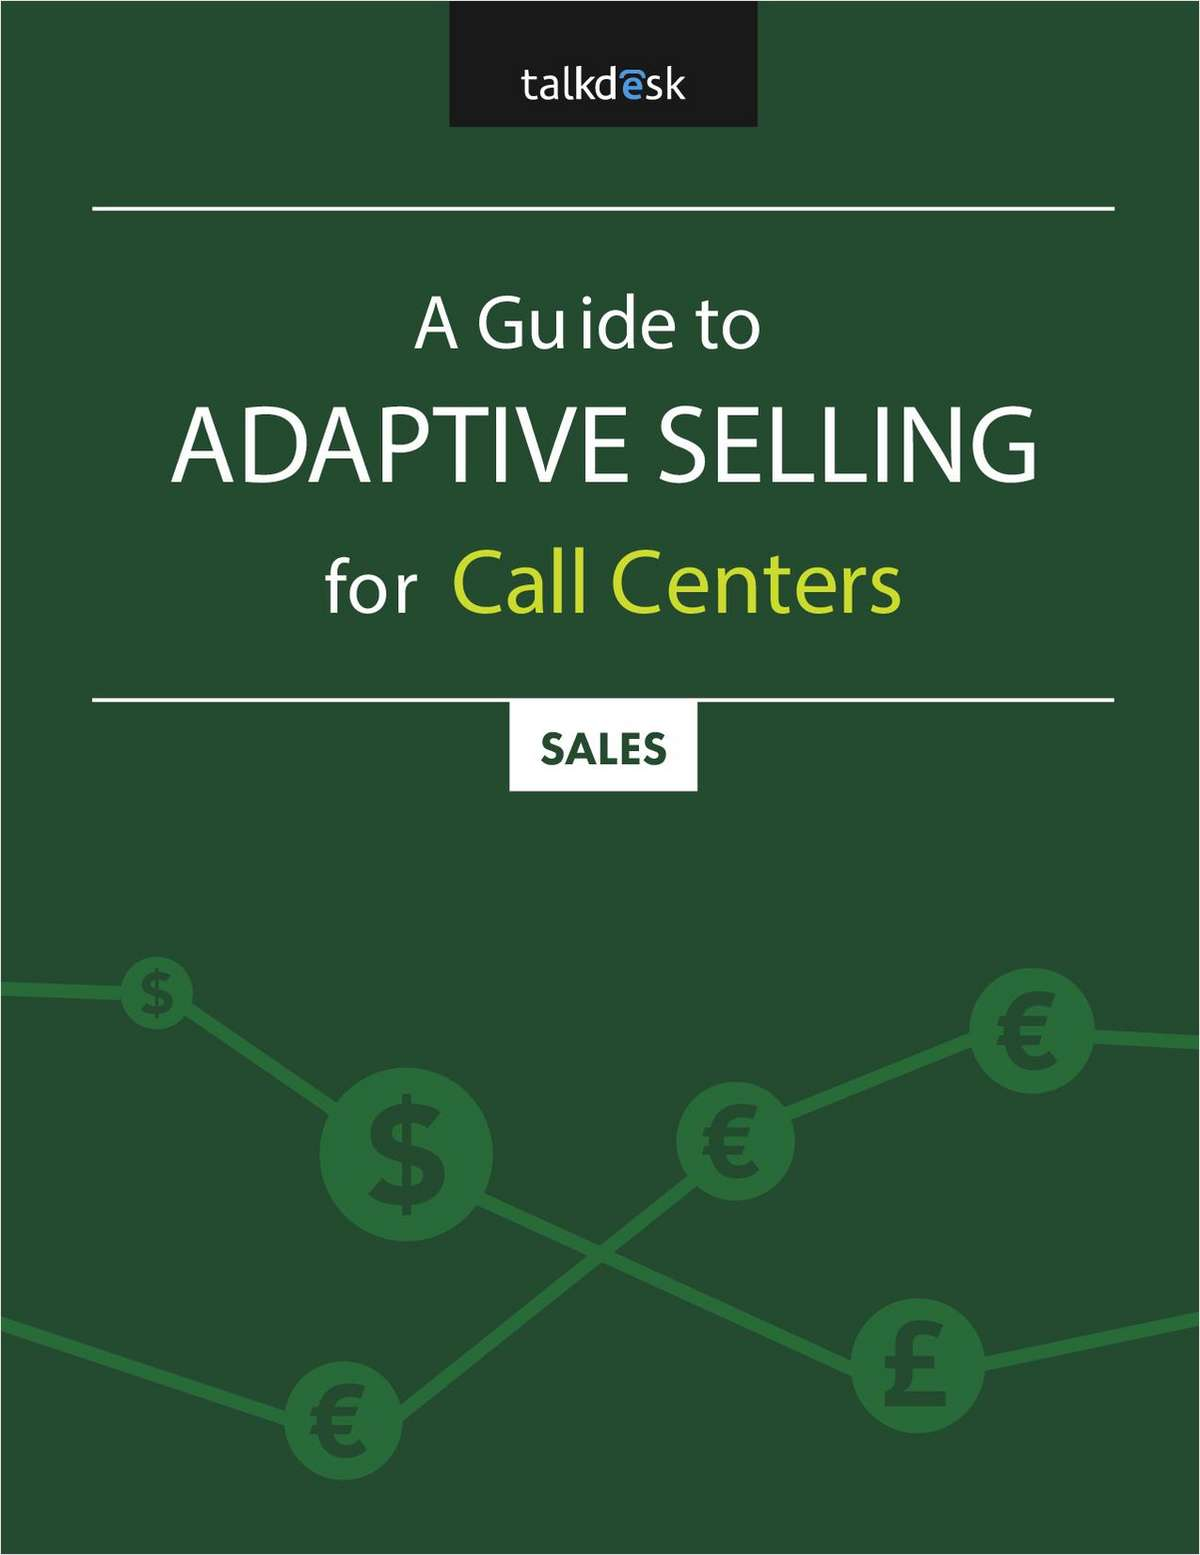 A Guide to Adaptive Selling for Call Centers